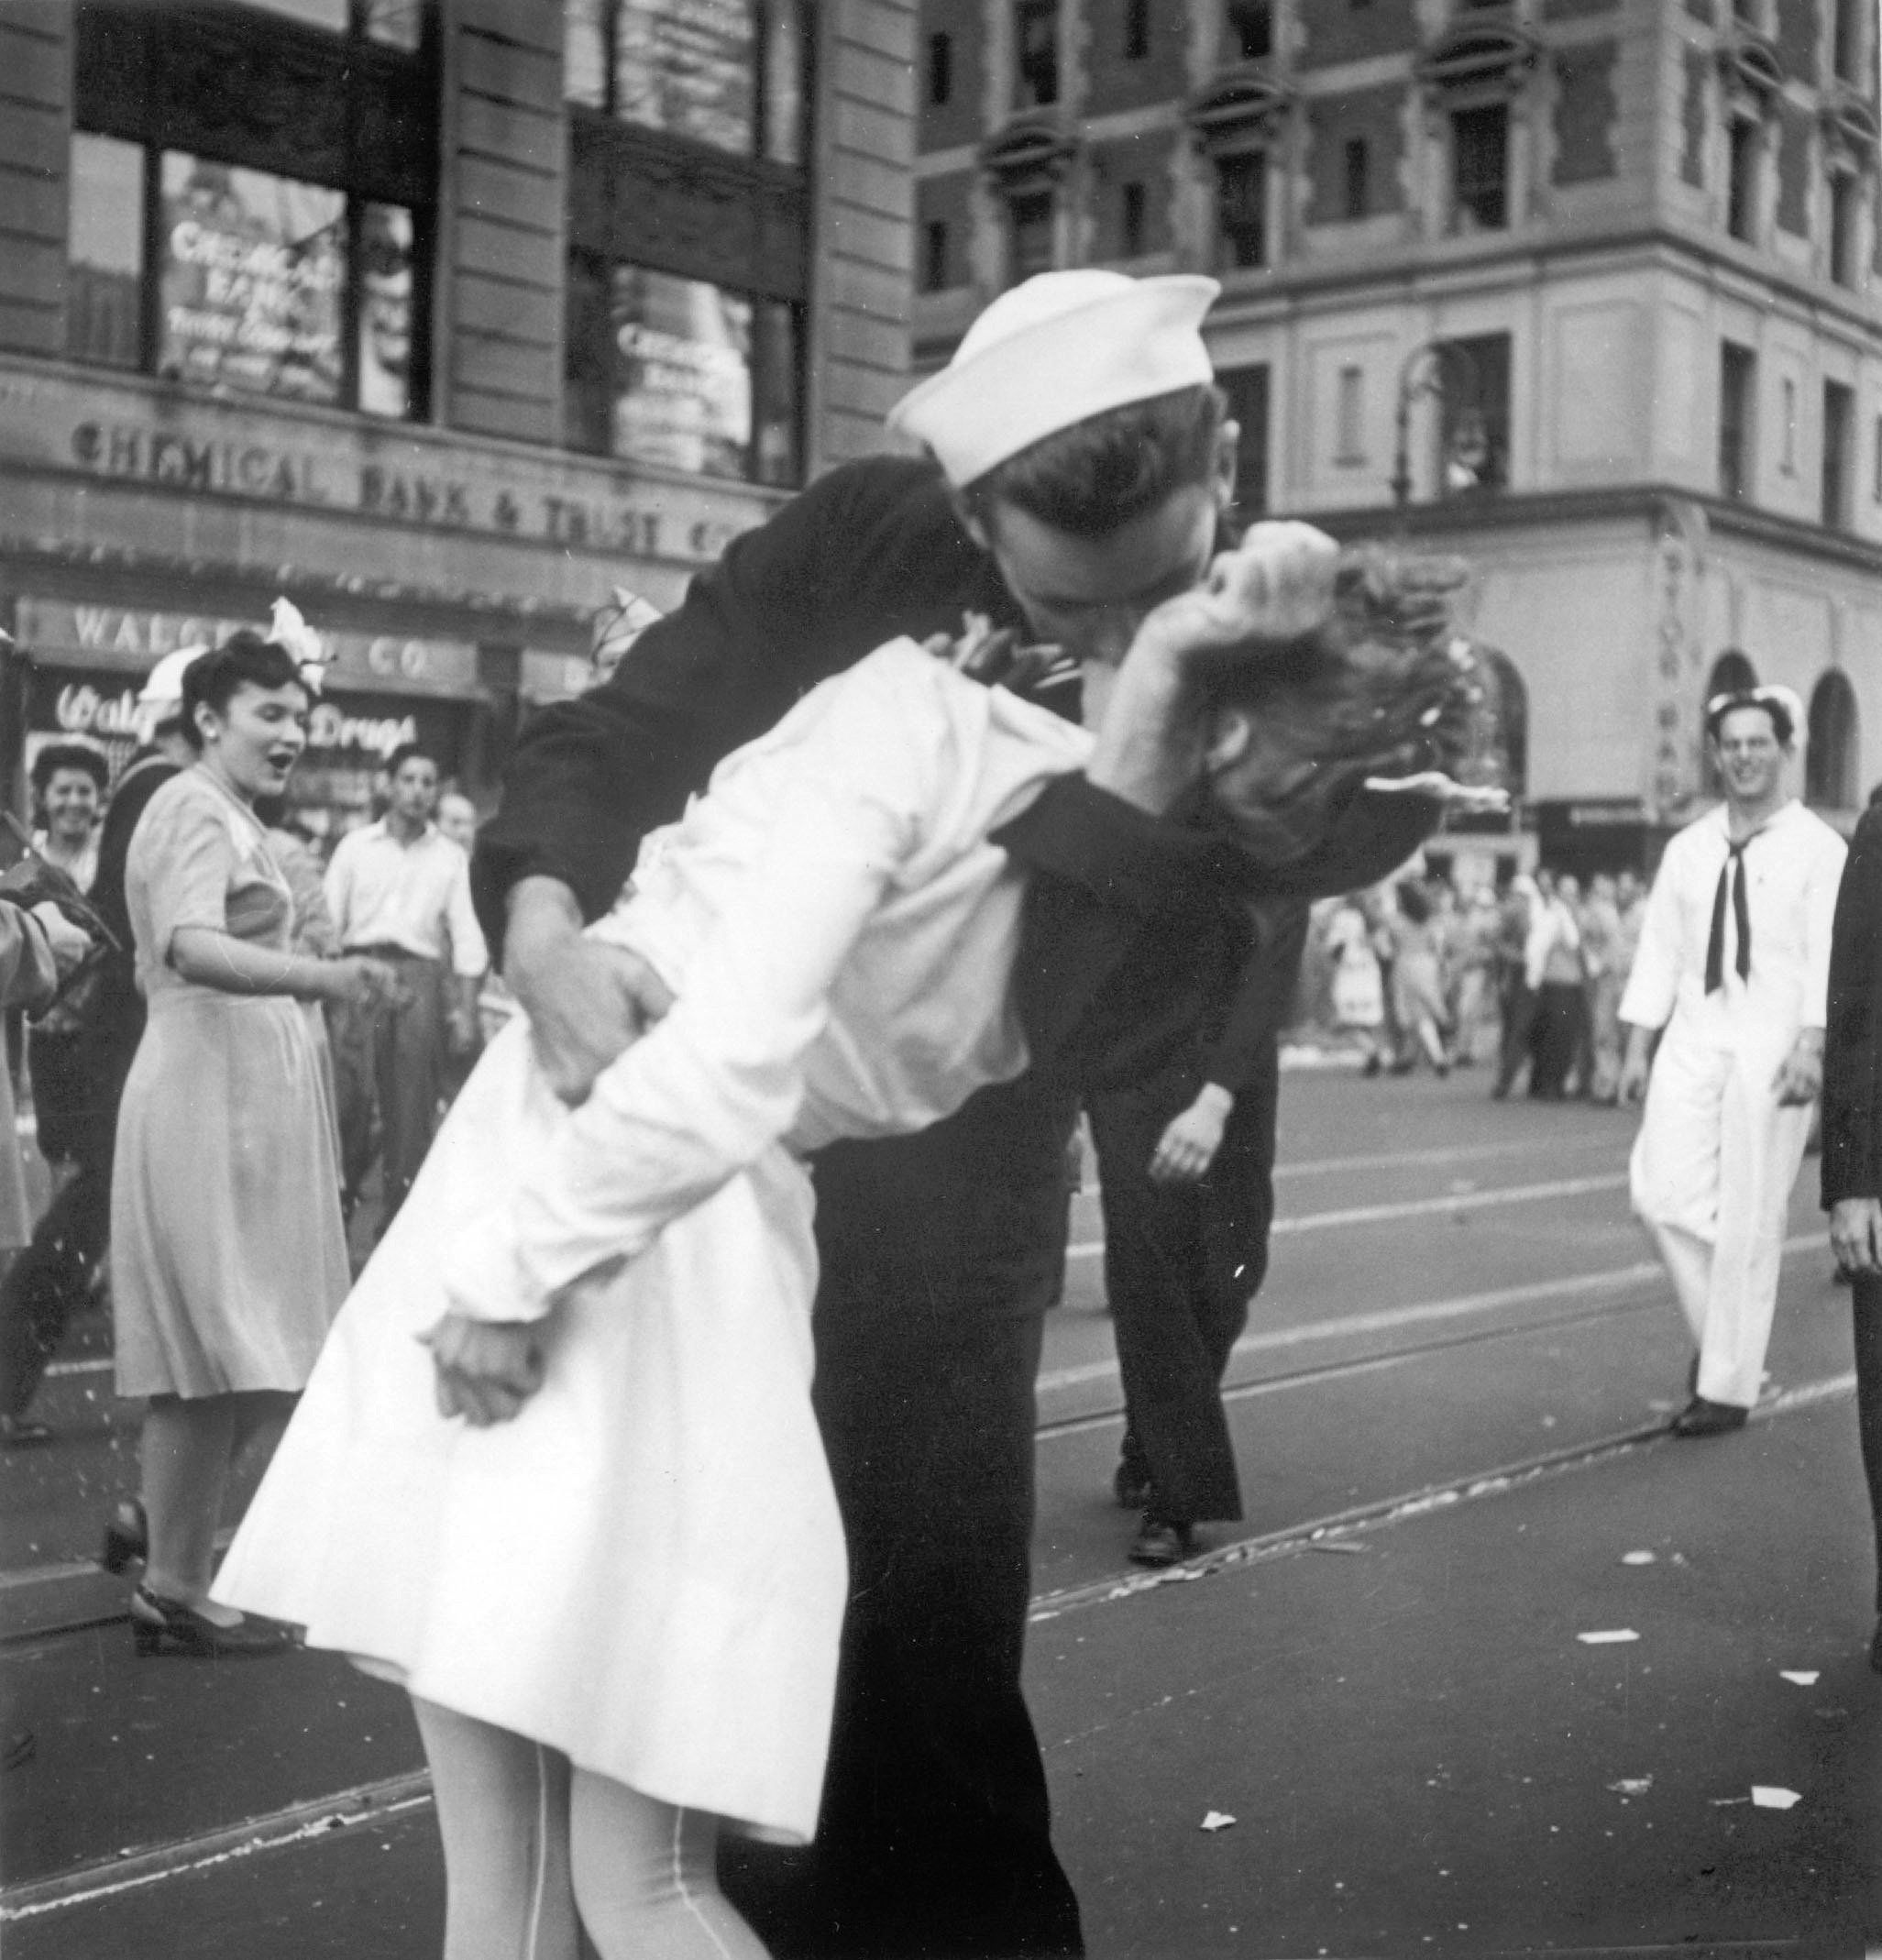 '#MeToo' spray-painted on statue of WWII sailor kissing nurse